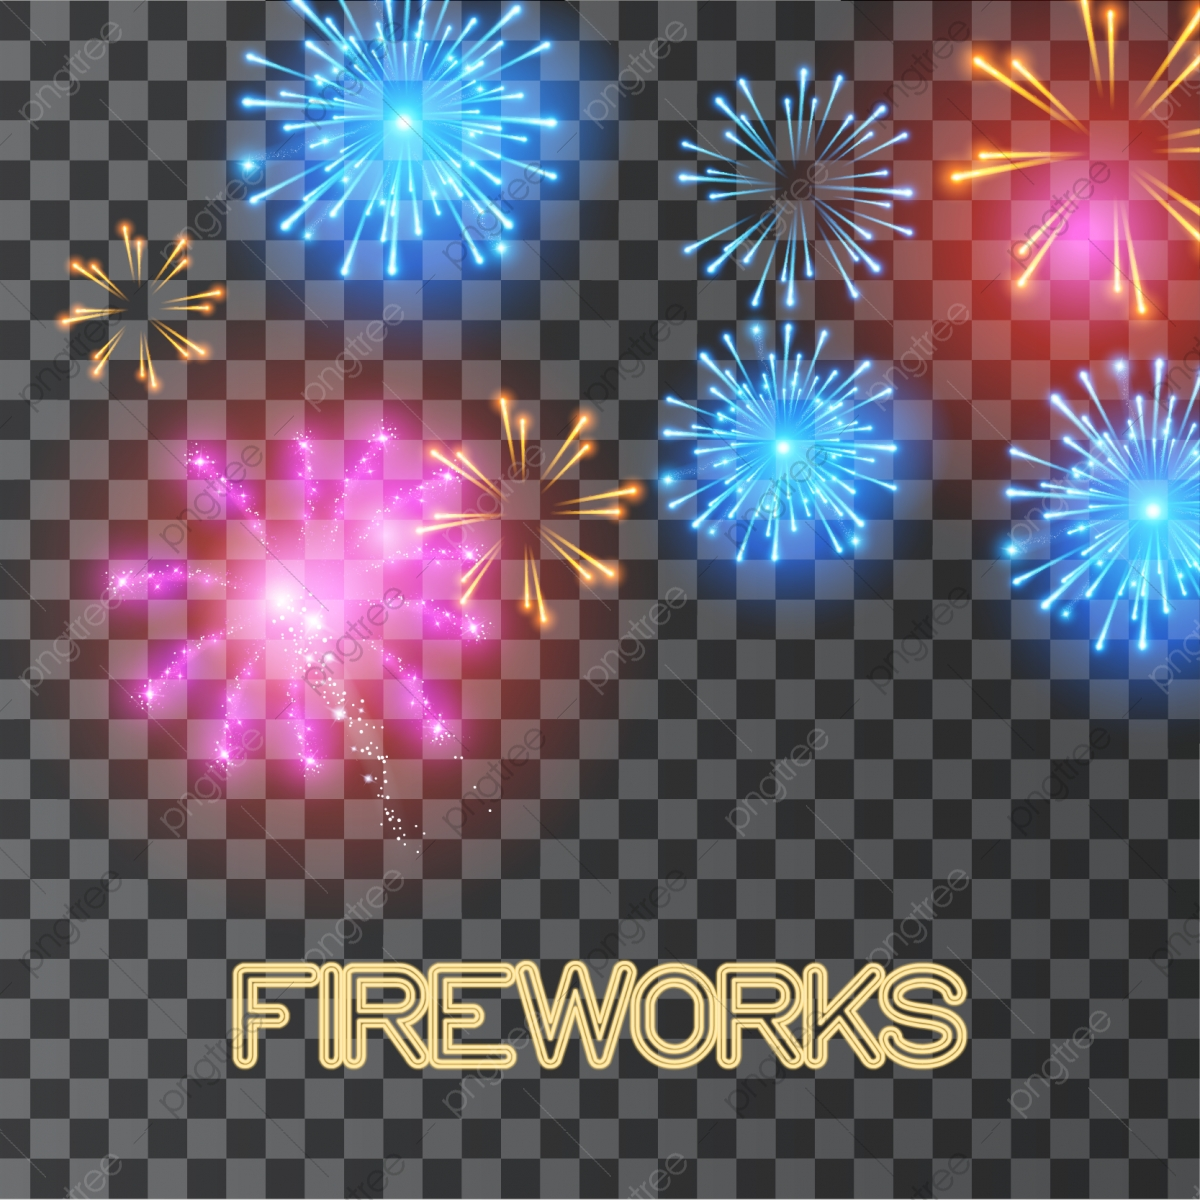 Fireworks Transparent PNG Clip Art Image | Gallery Yopriceville -  High-Quality Images and Transparent PNG Free Clipart